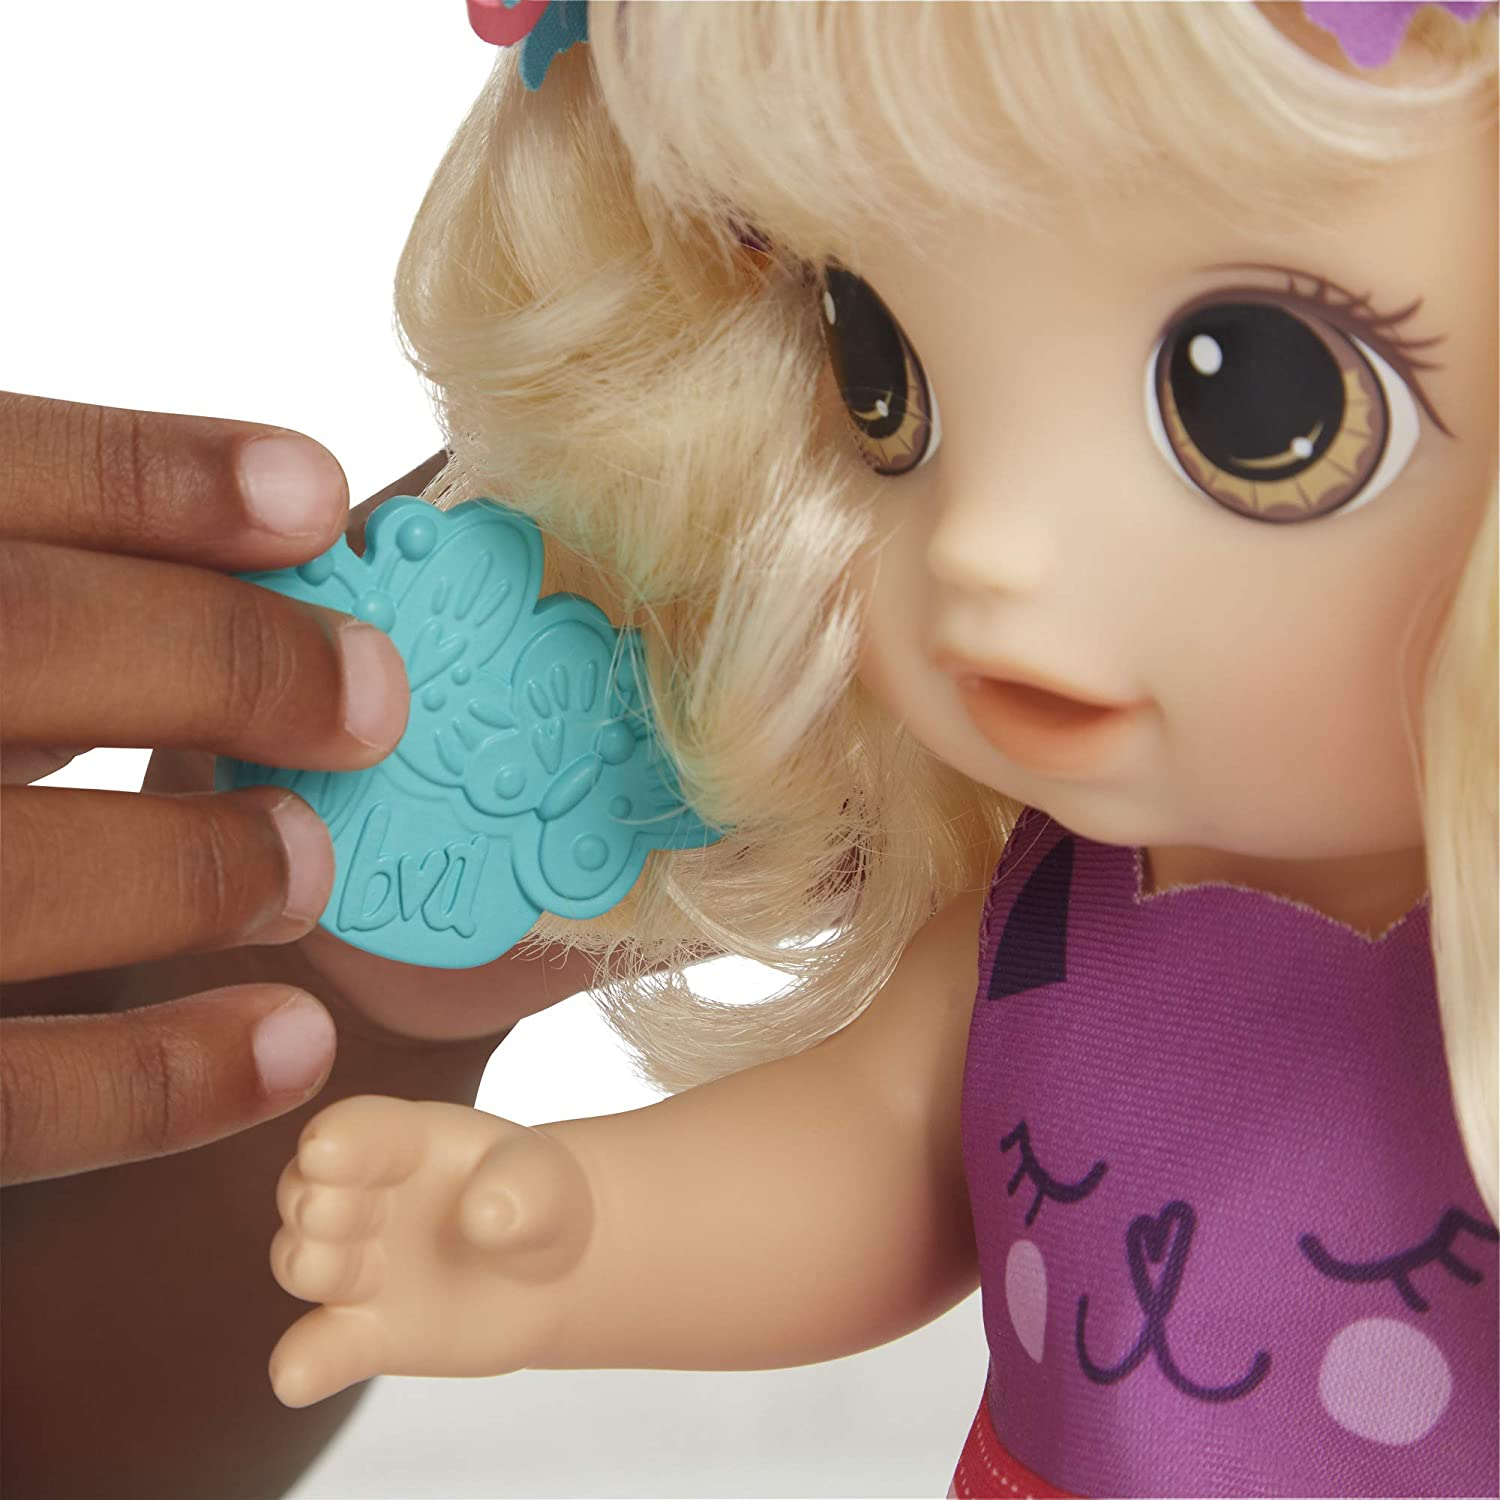 Amazon Com Baby Alive Snip An Style Baby Blonde Hair Talking Doll With Bangs That Grow Then Get Shorter Toy Doll For Kids Ages 3 Years Old And Up Toys Games